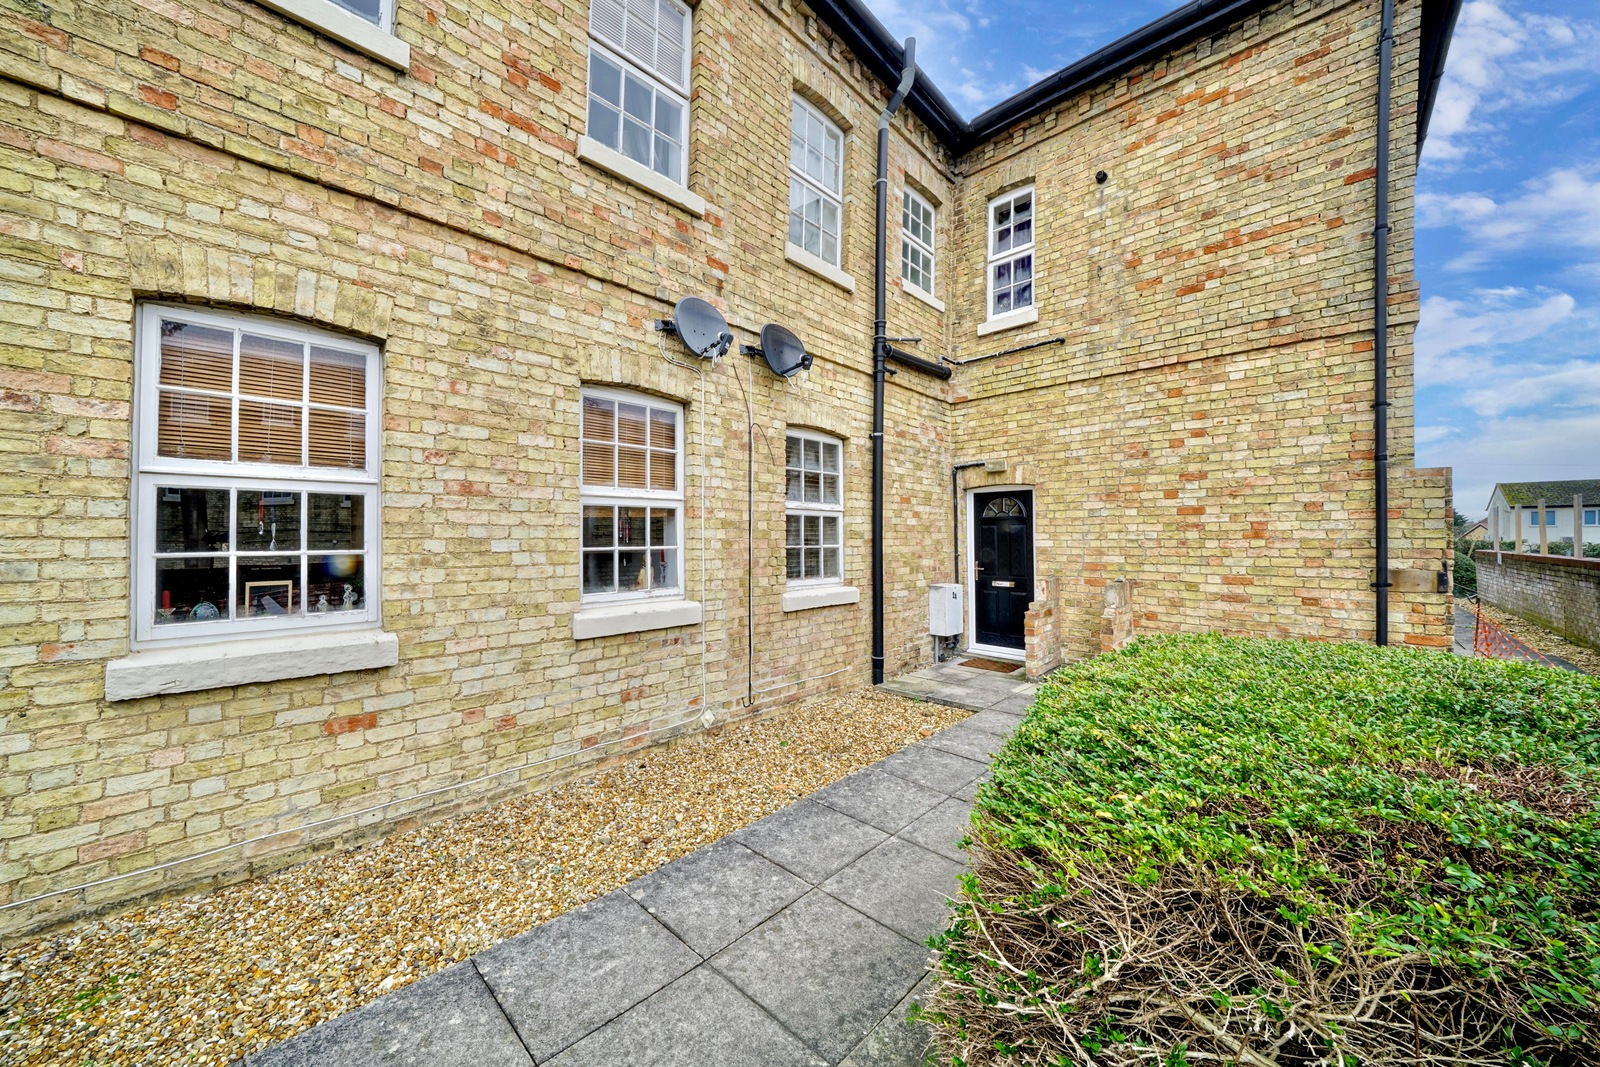 1 bed apartment for sale in Linclare Place, Eaton Ford - Property Image 1